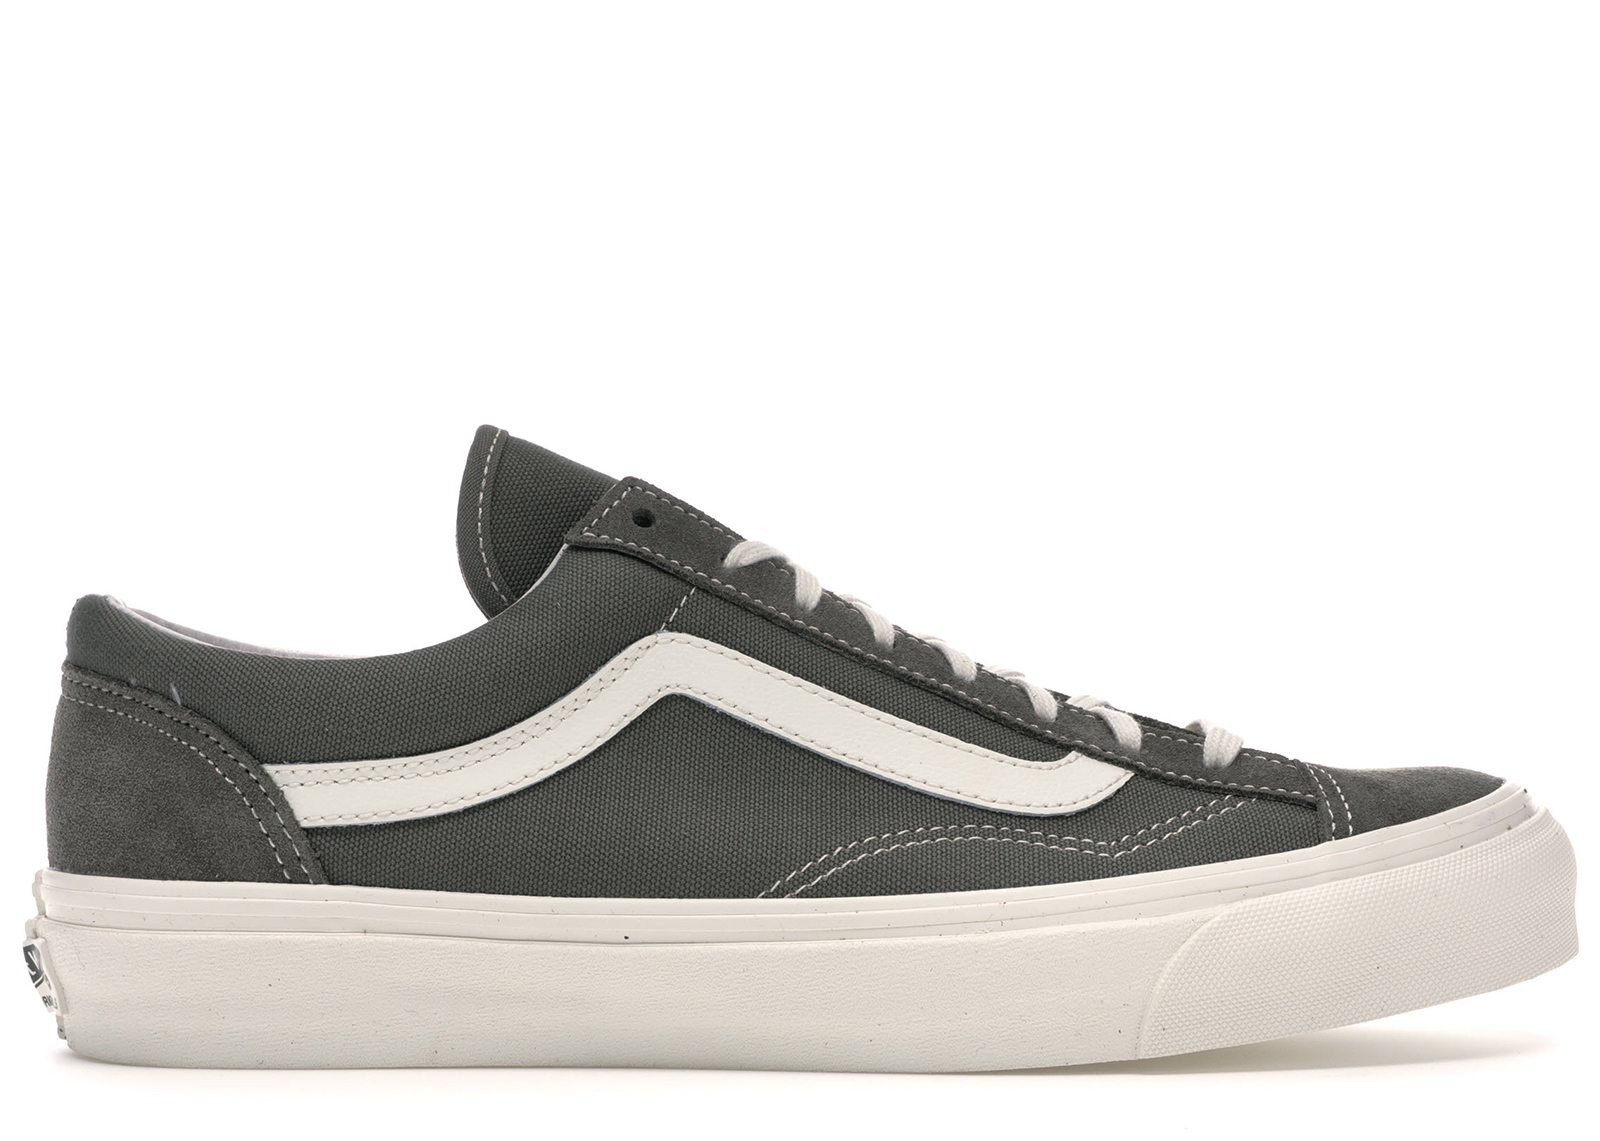 Style 36 Pilgrim Surf + Supply In Olivewhite